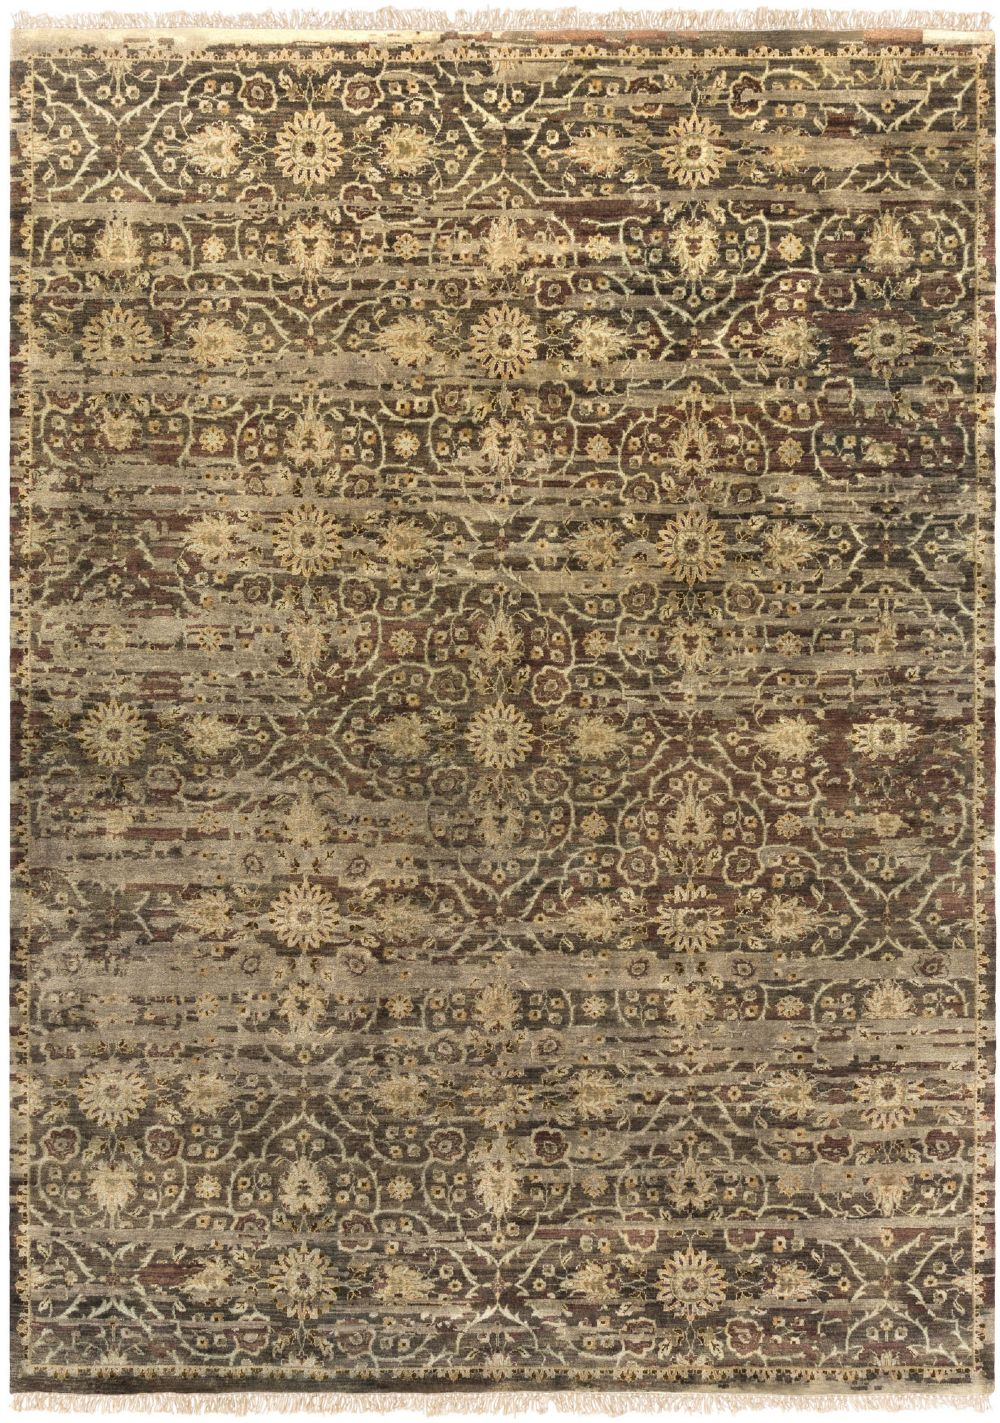 surya empress country & floral area rug collection